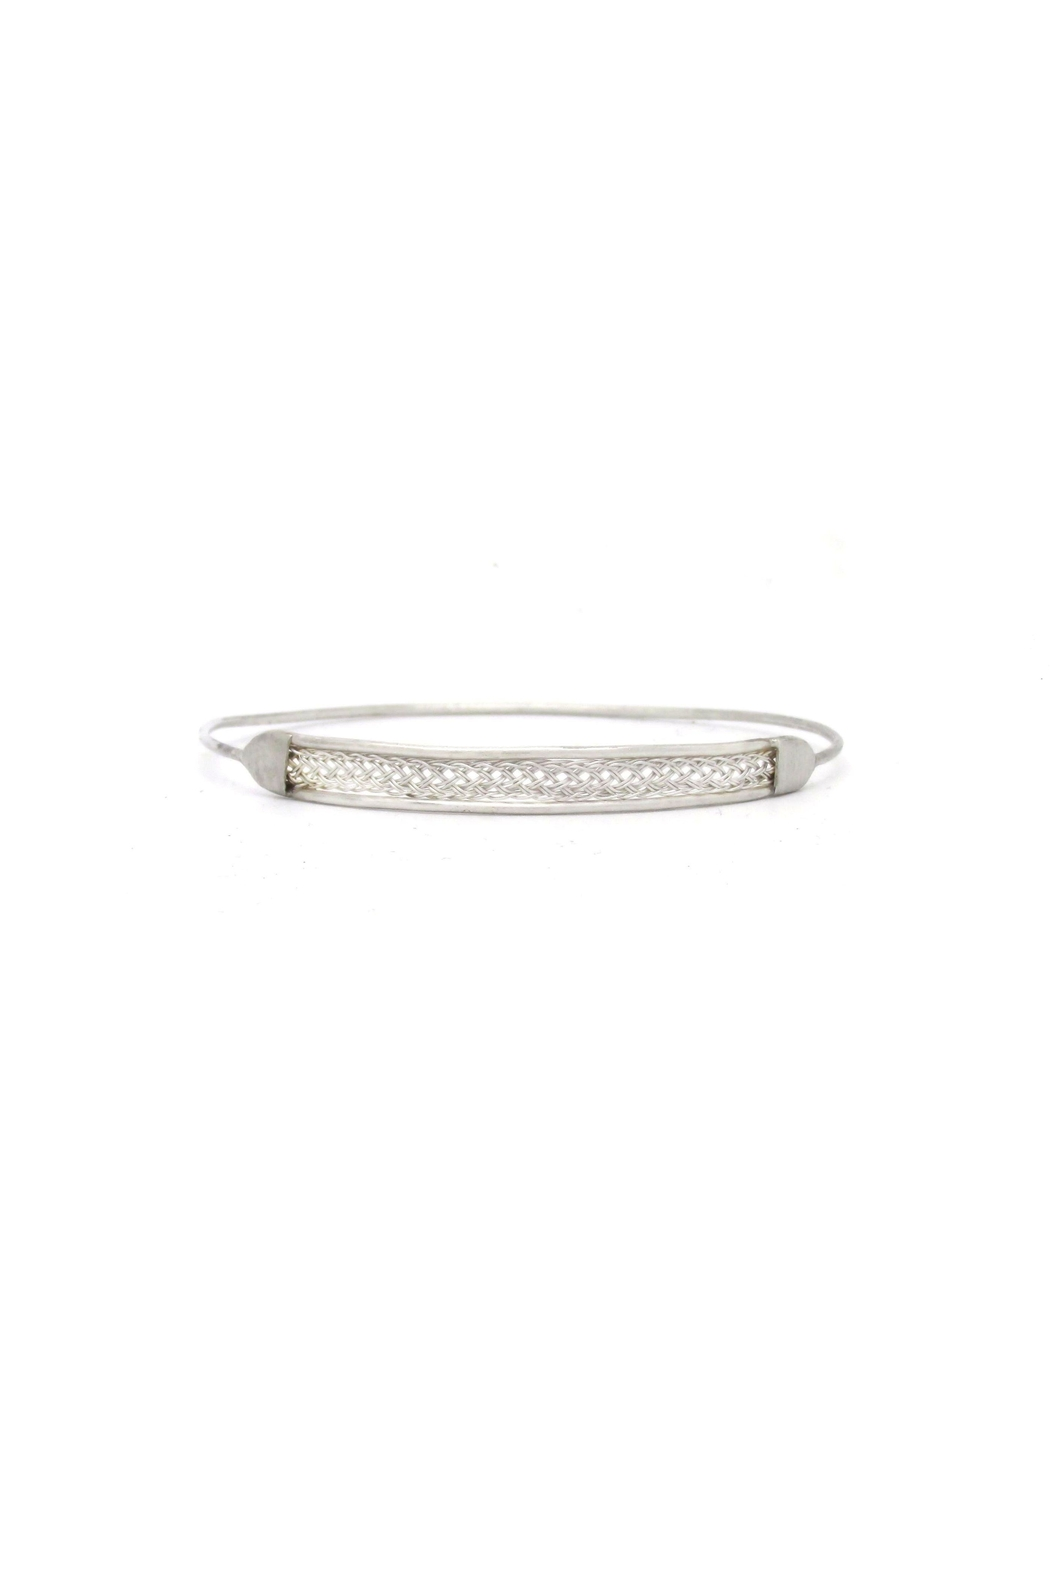 Laura Jane's Jewelry Silver Braid Bangle - Front Cropped Image